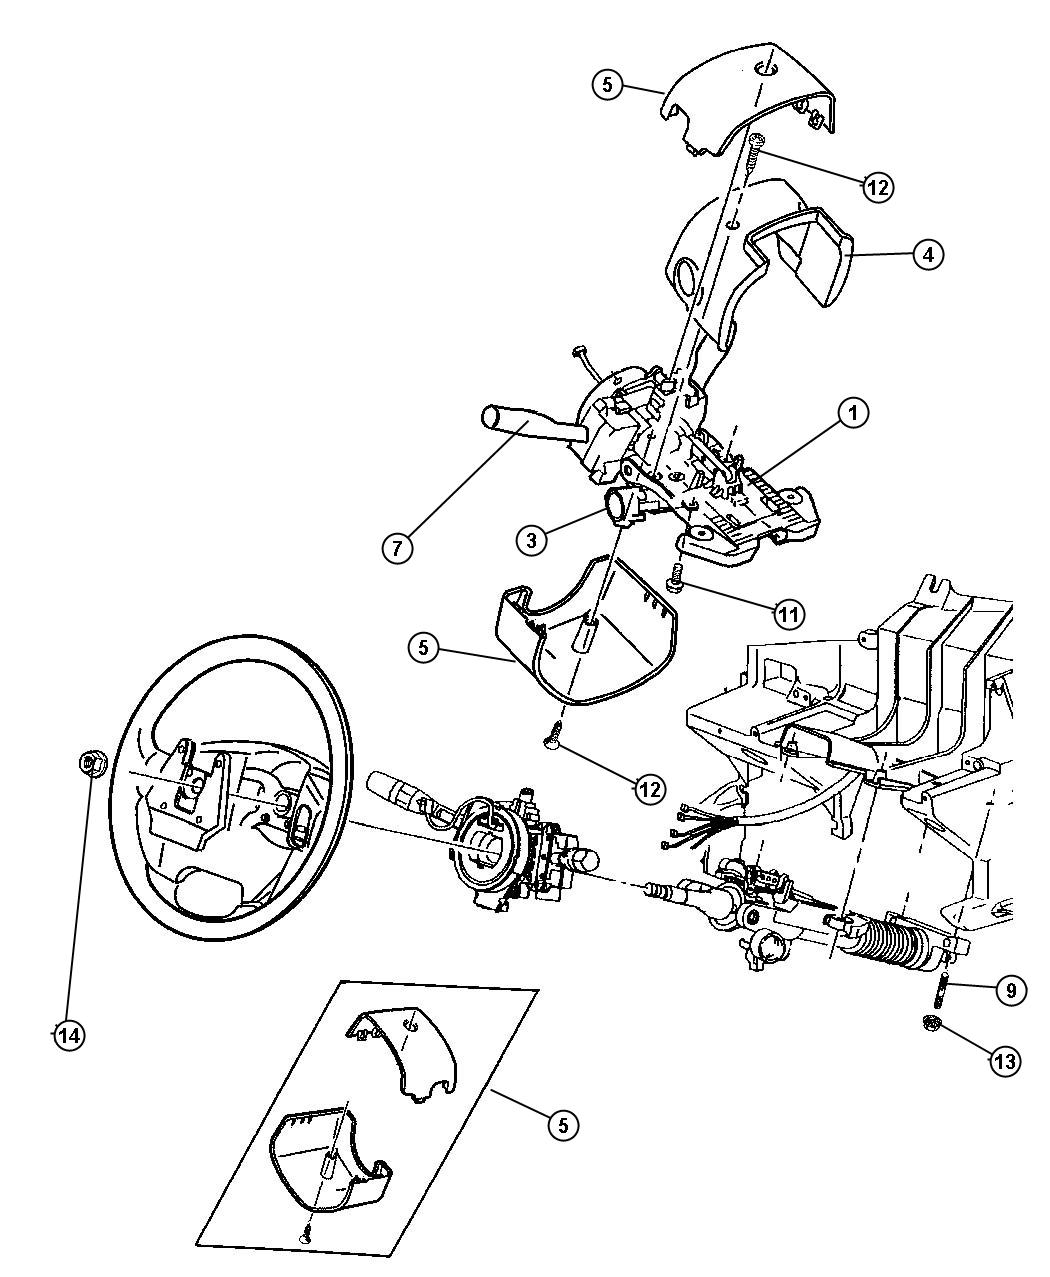 Tank Engine Diagram Auto Electrical Wiring 1994 Dodge Dakota V6 Schematic Gas Compartment To Diagnostics